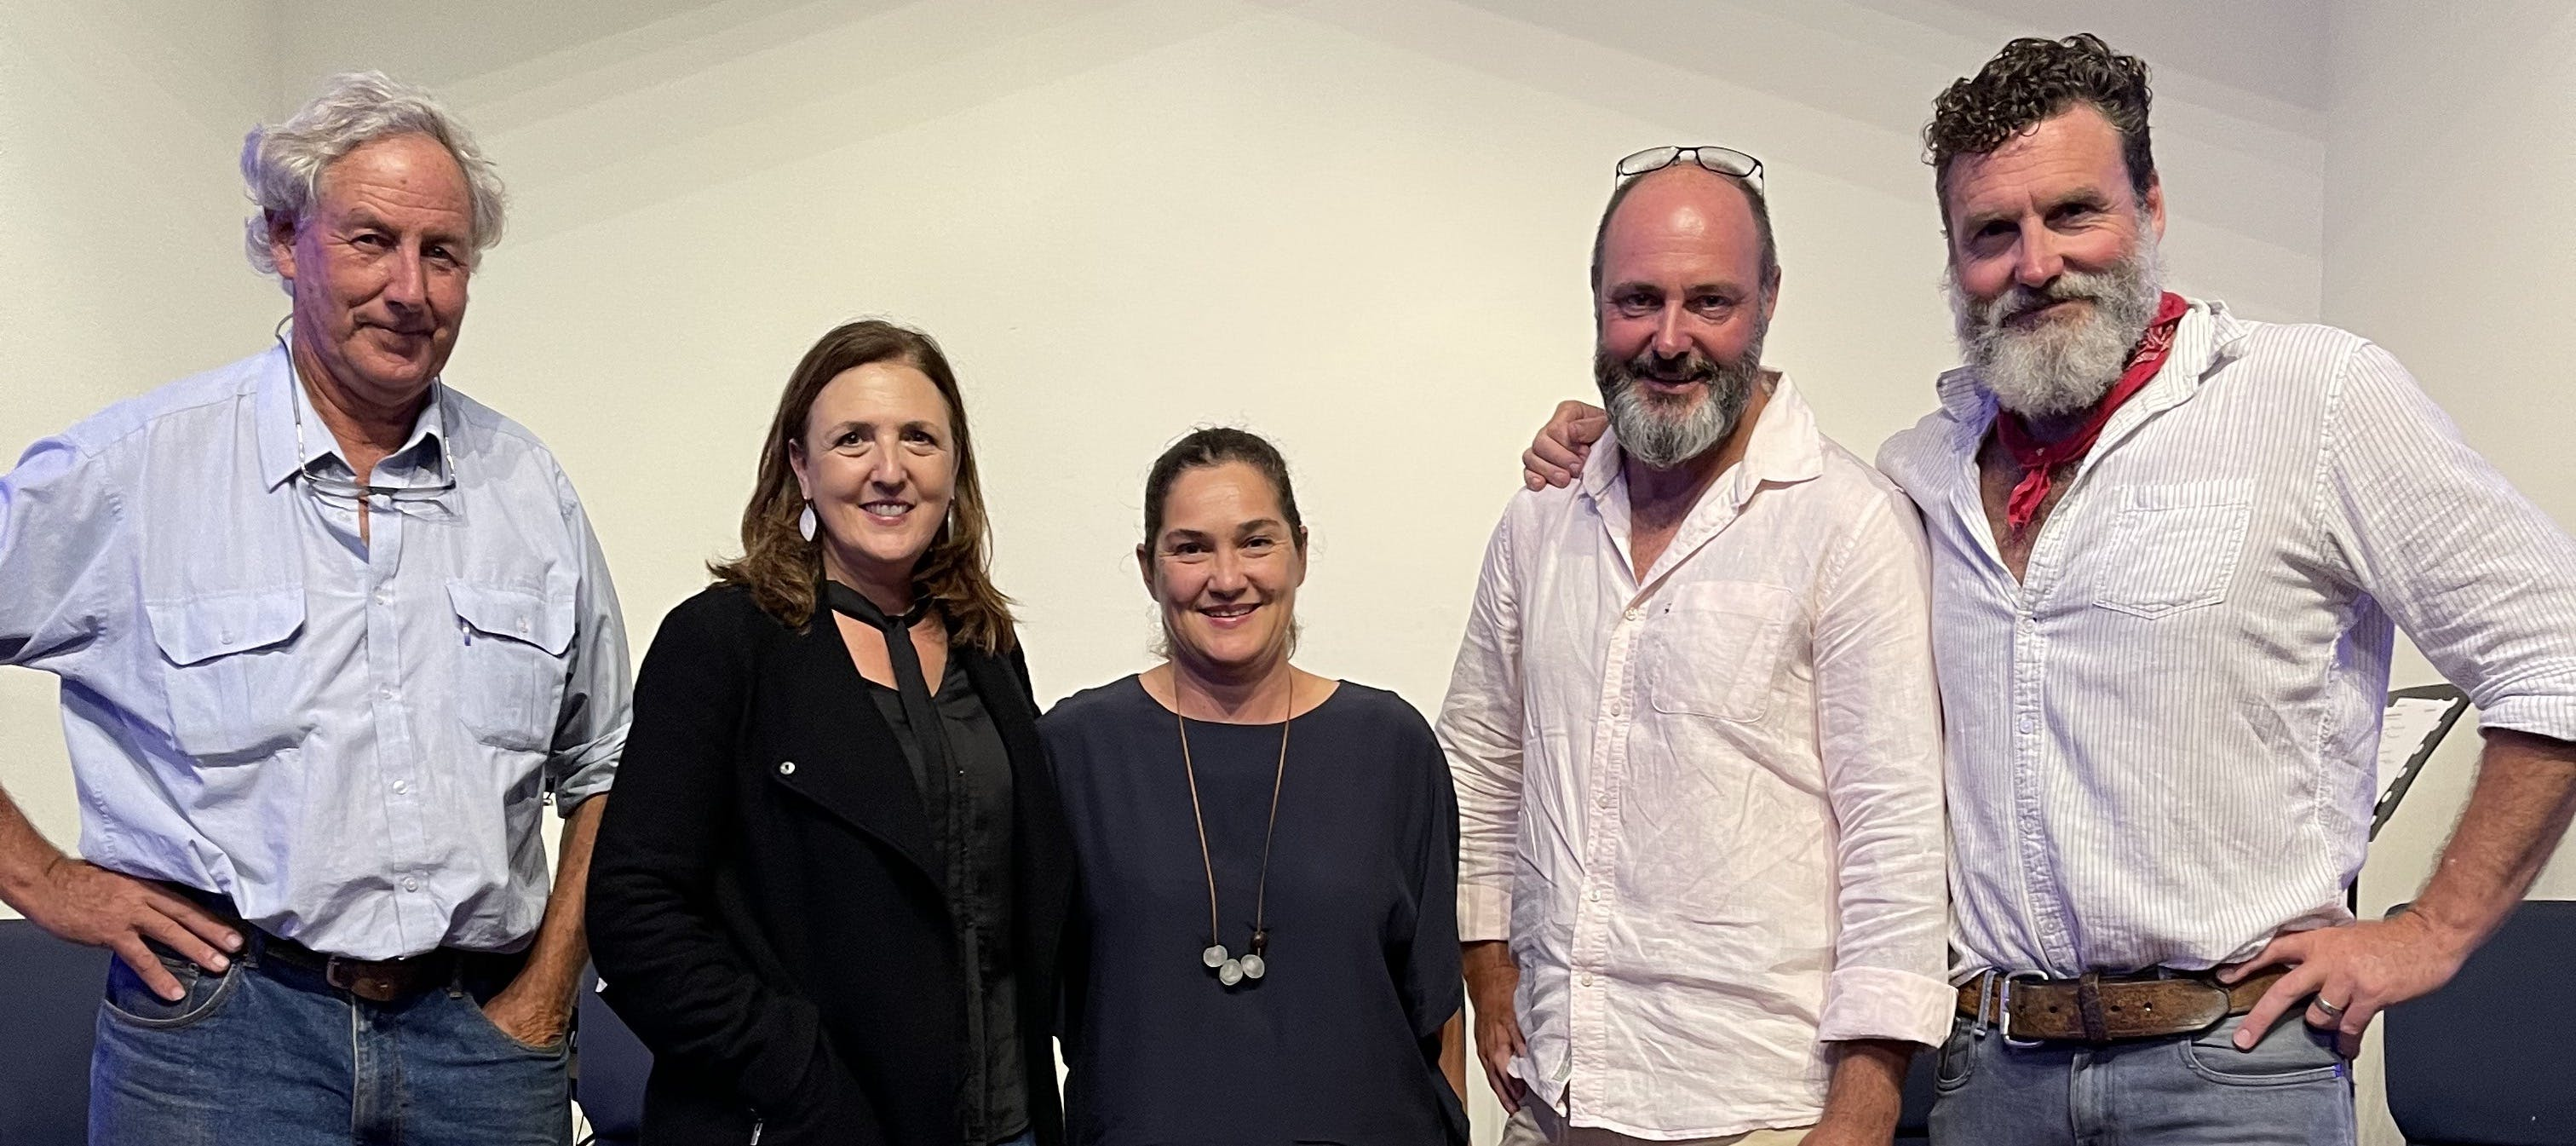 Charles Massy, Tawnya Bahr, Lucy Allon, Murray Prior, Charlie Arnott at Soil to Stomach event, 13 March 2021